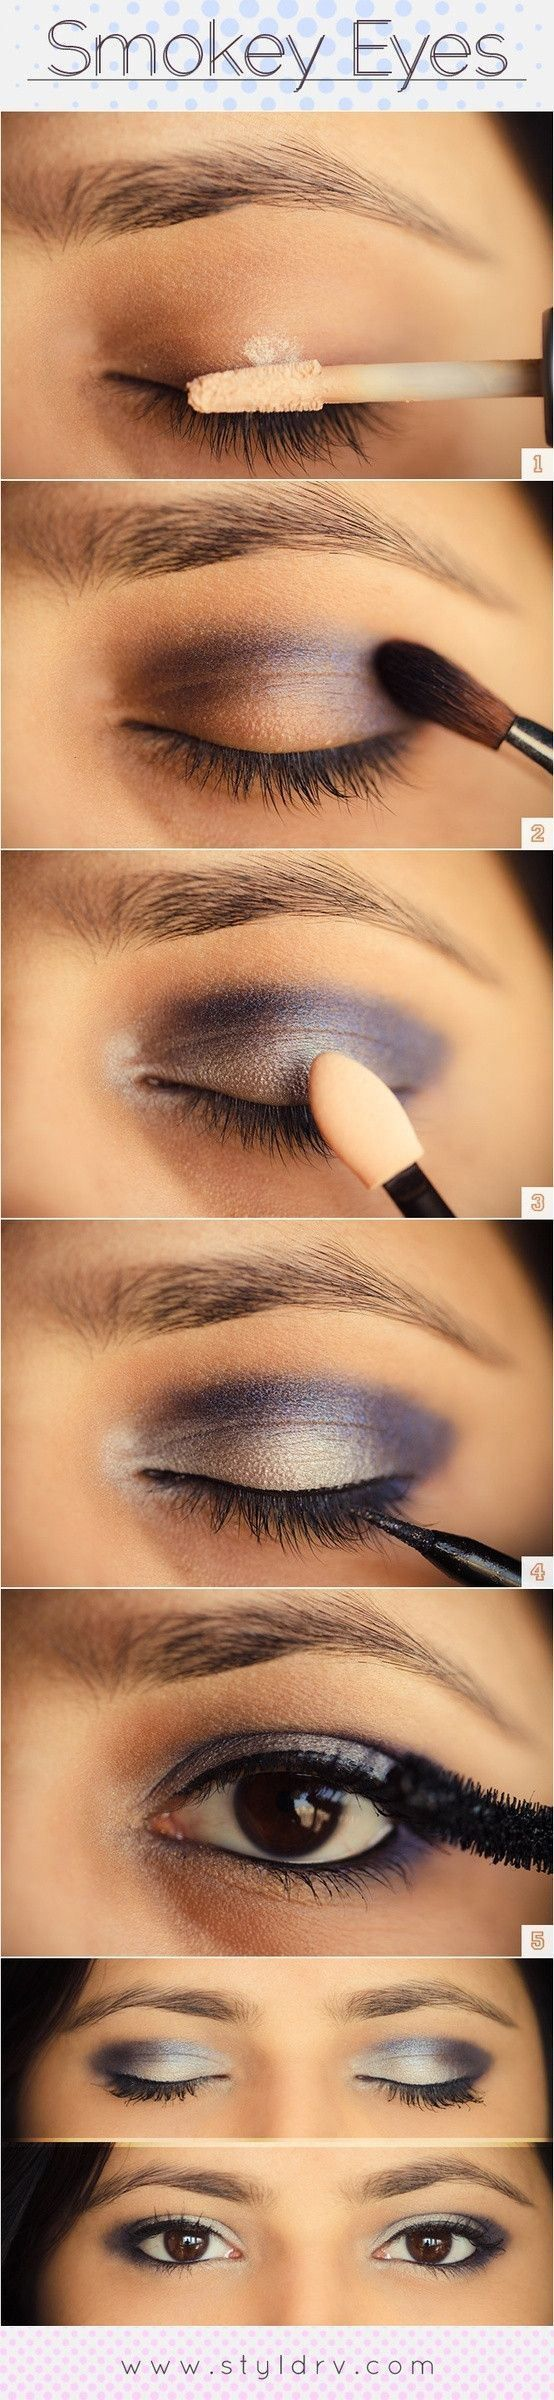 Smoky Makeup For Small Eyes | | Page 2